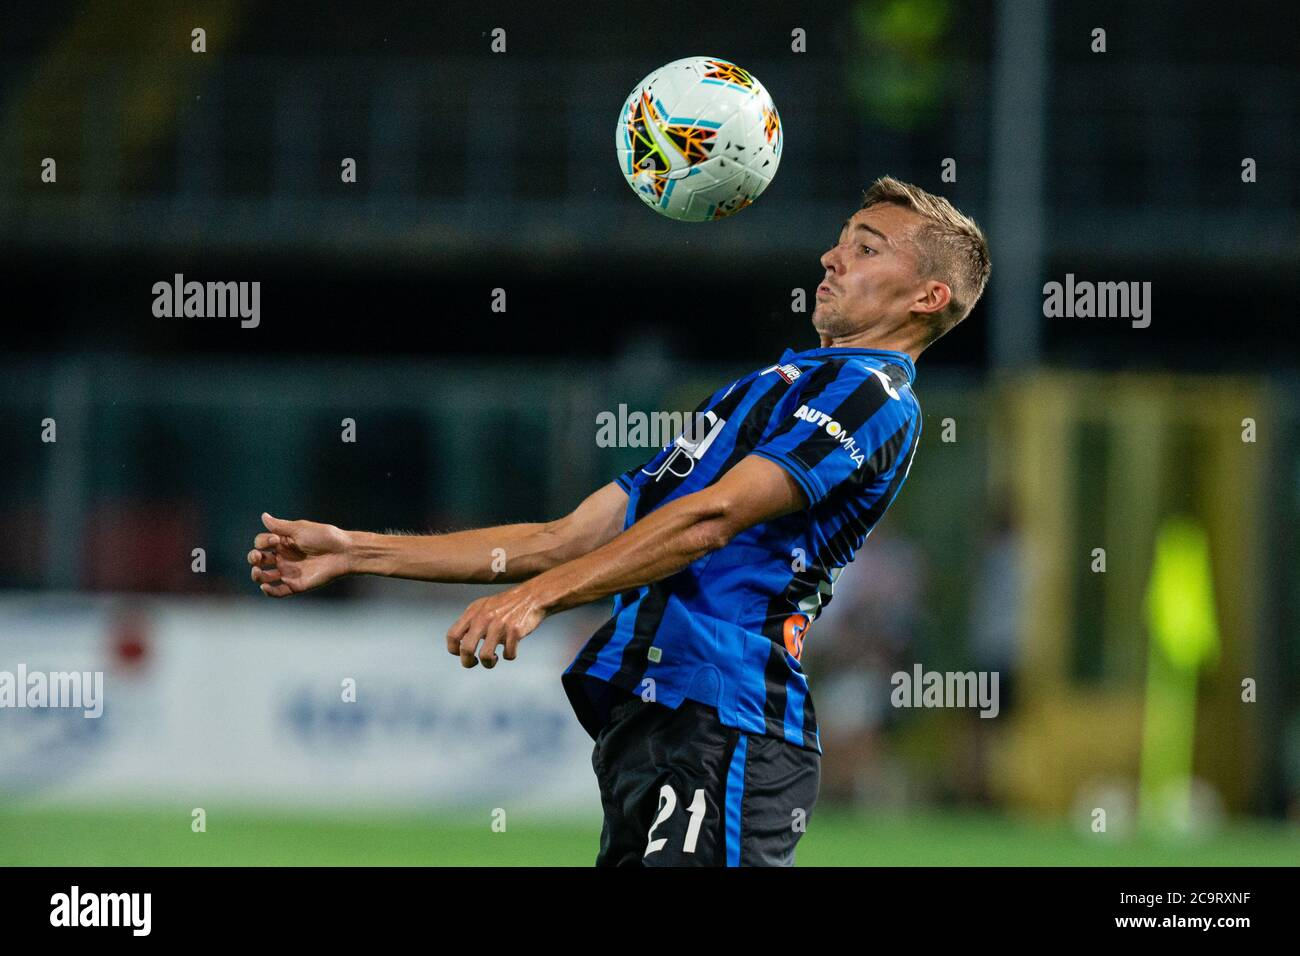 Timothy Castagne High Resolution Stock Photography and Images - Alamy